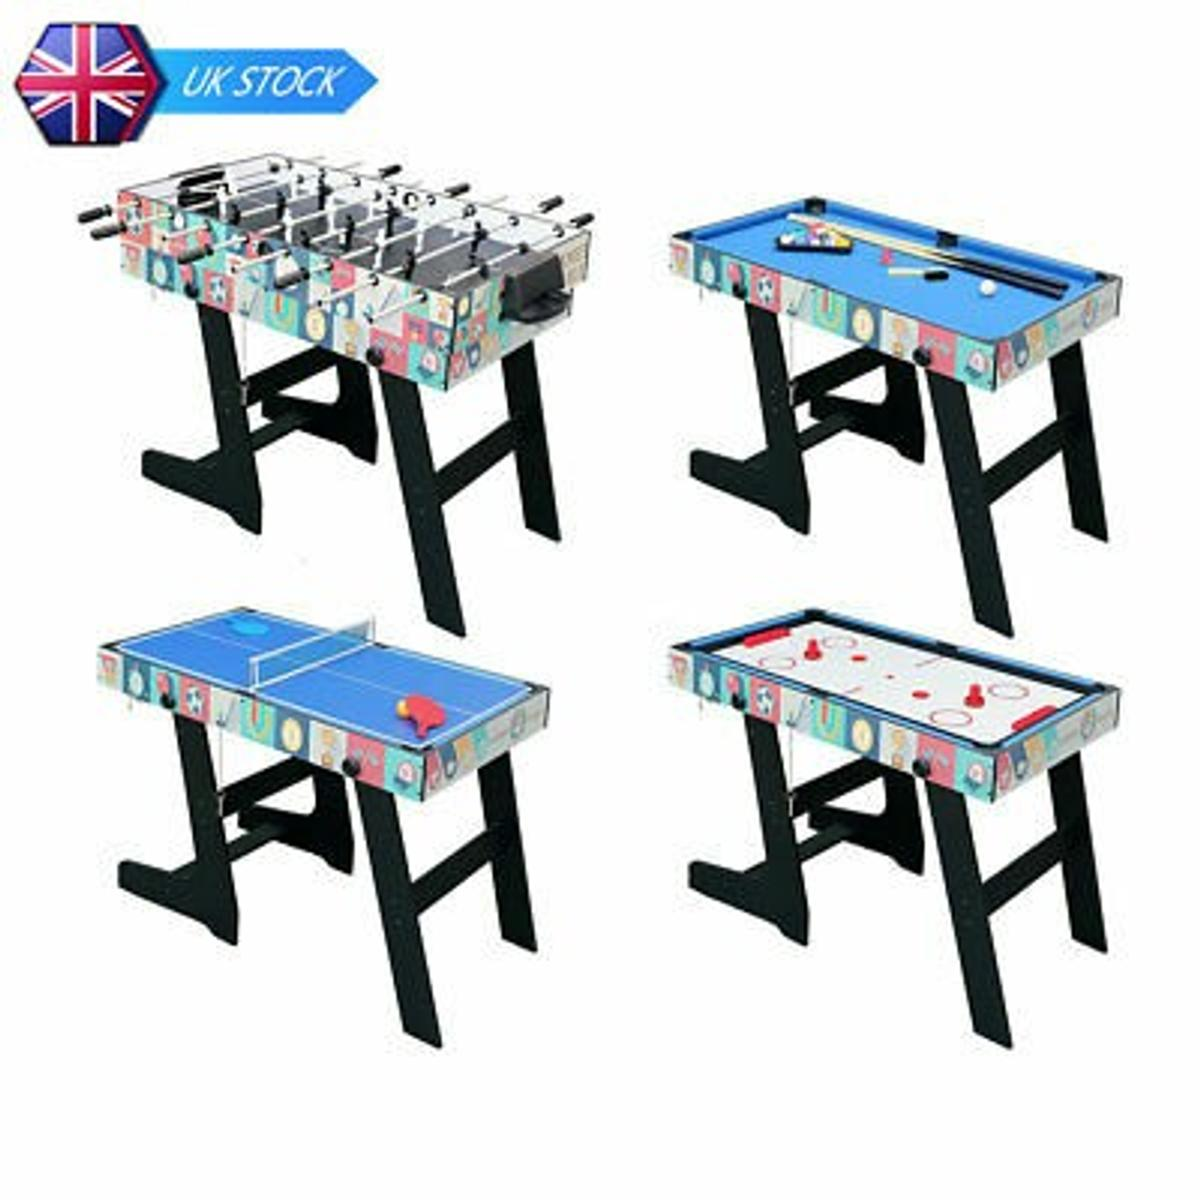 - New And Boxed 4ft Folding Multi Game 4 In 1. In M18 Manchester For